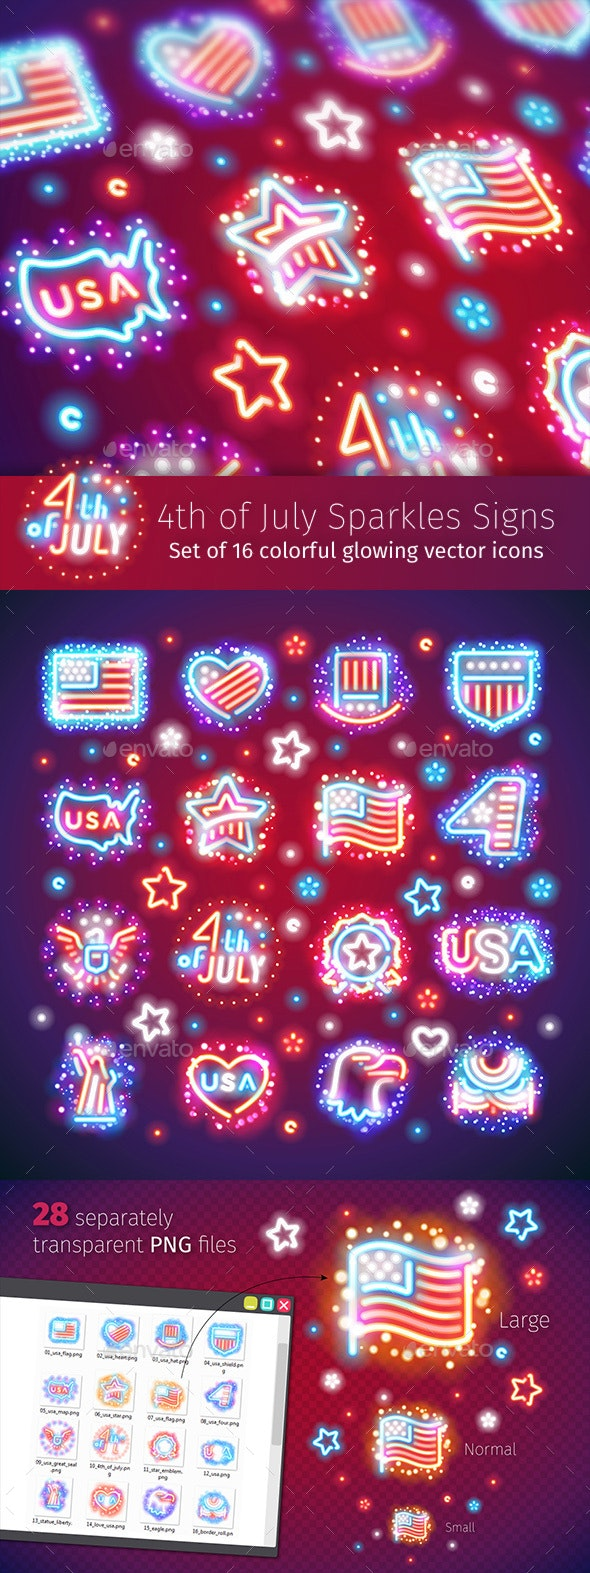 Fourth of July Signs with Sparkles - Decorative Symbols Decorative